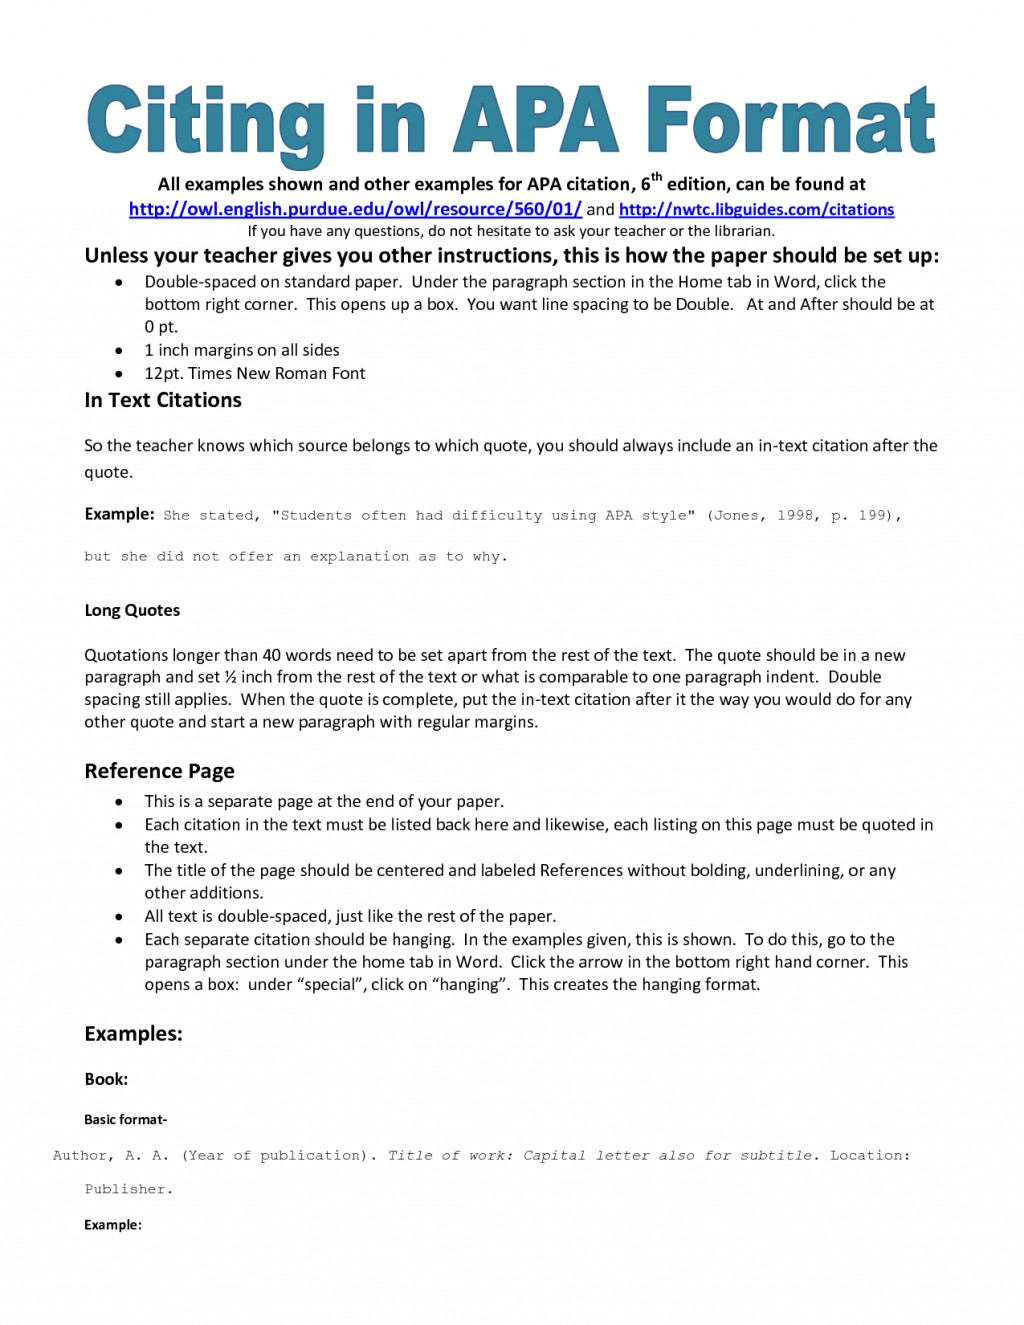 002 Research Paper How To Cite Picture In Archaicawful A Apa Figures Large